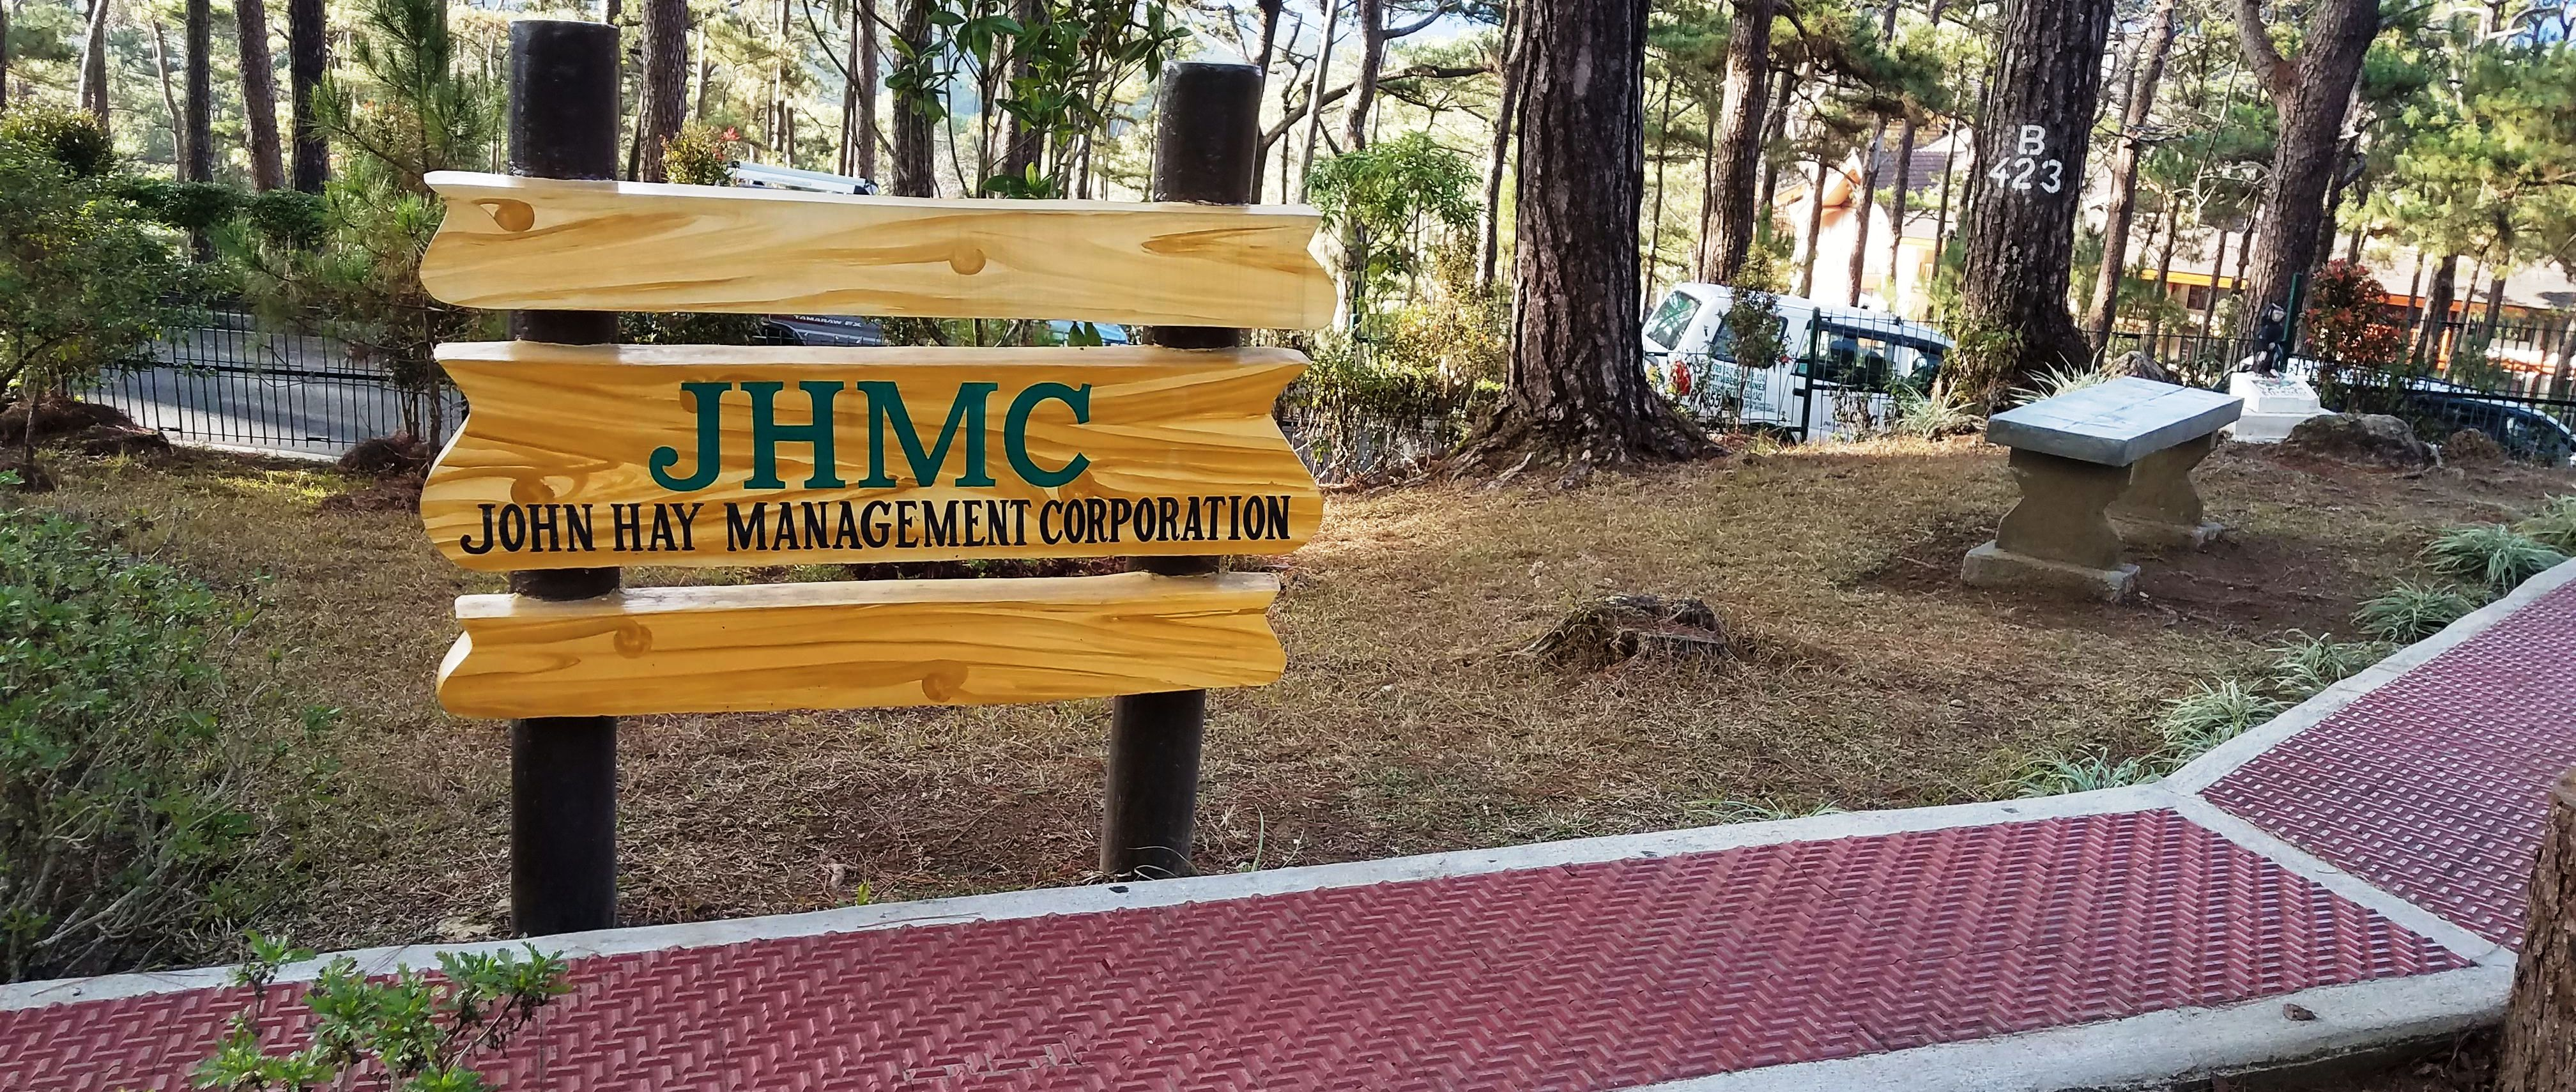 JHMC hires nearly 6,000 people in 2018